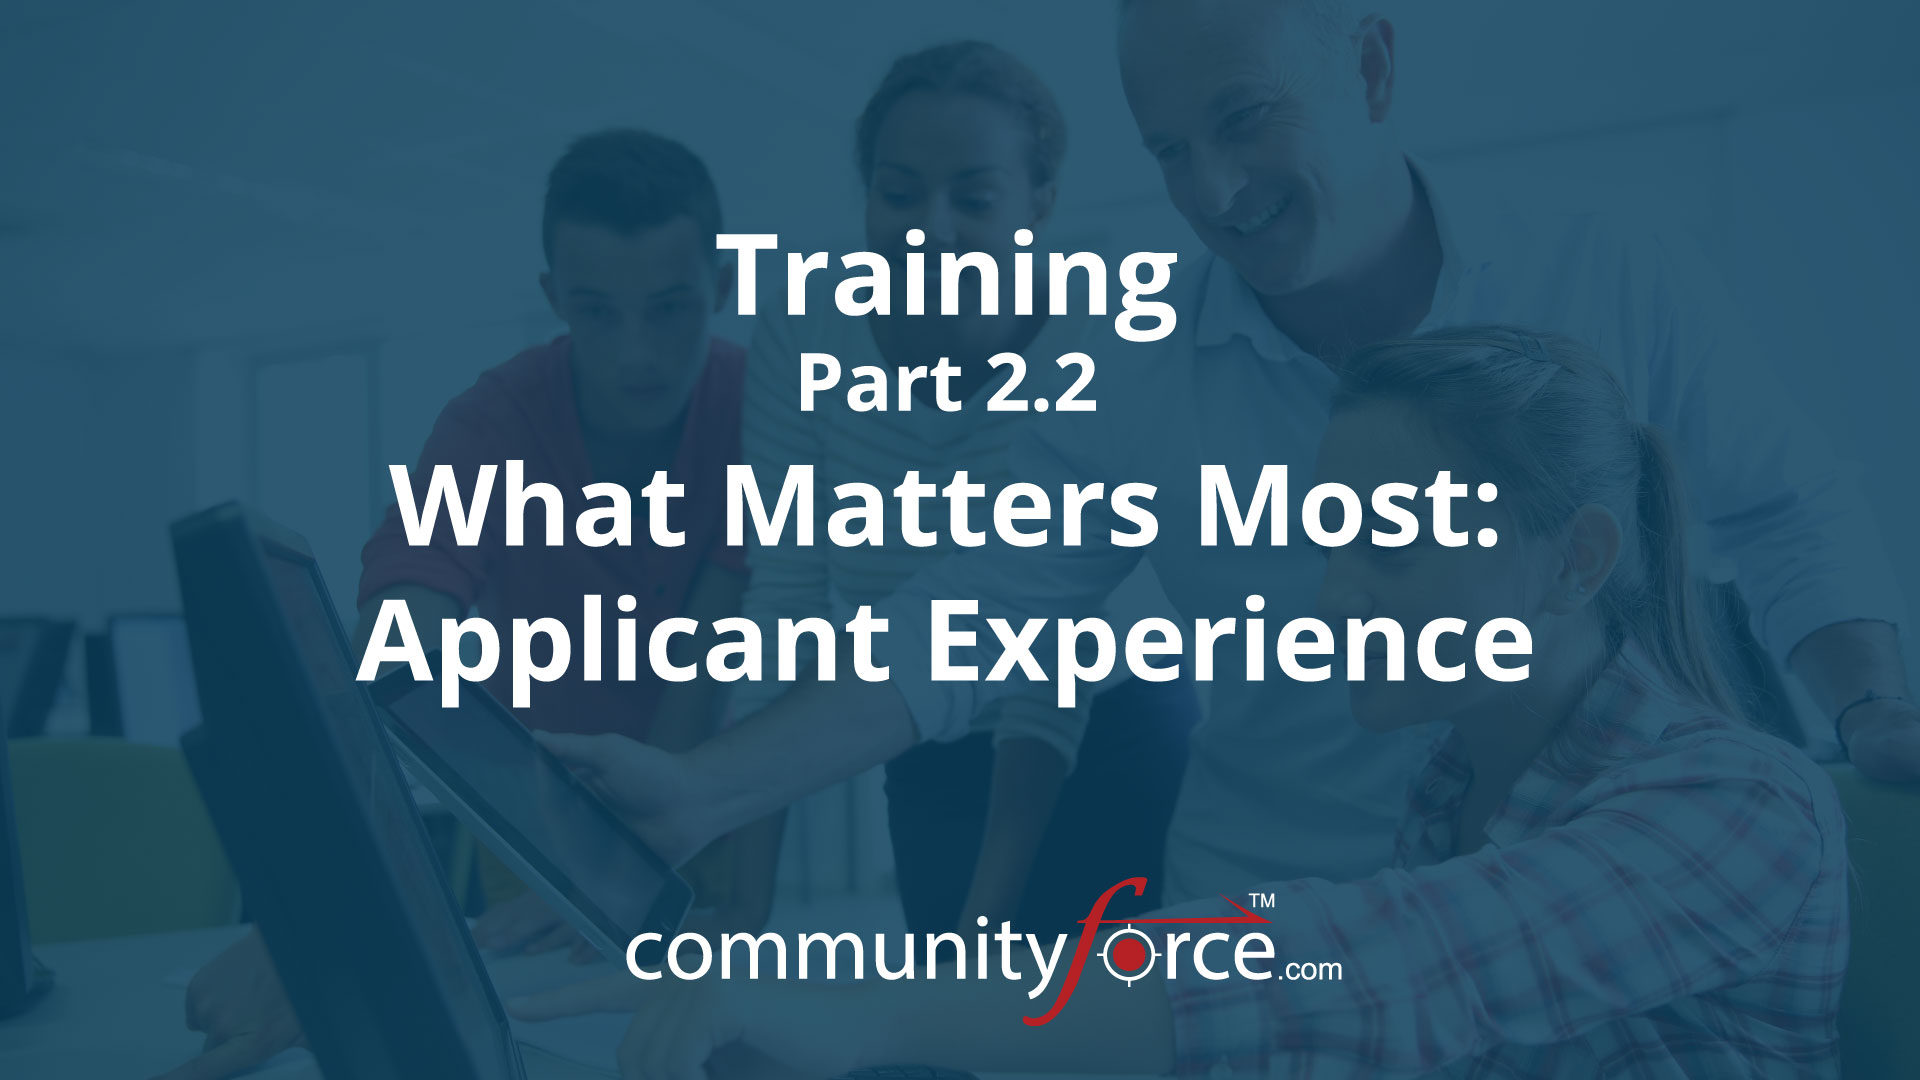 LF1 Training Part 2.2: What Matters Most: Applicant Experience